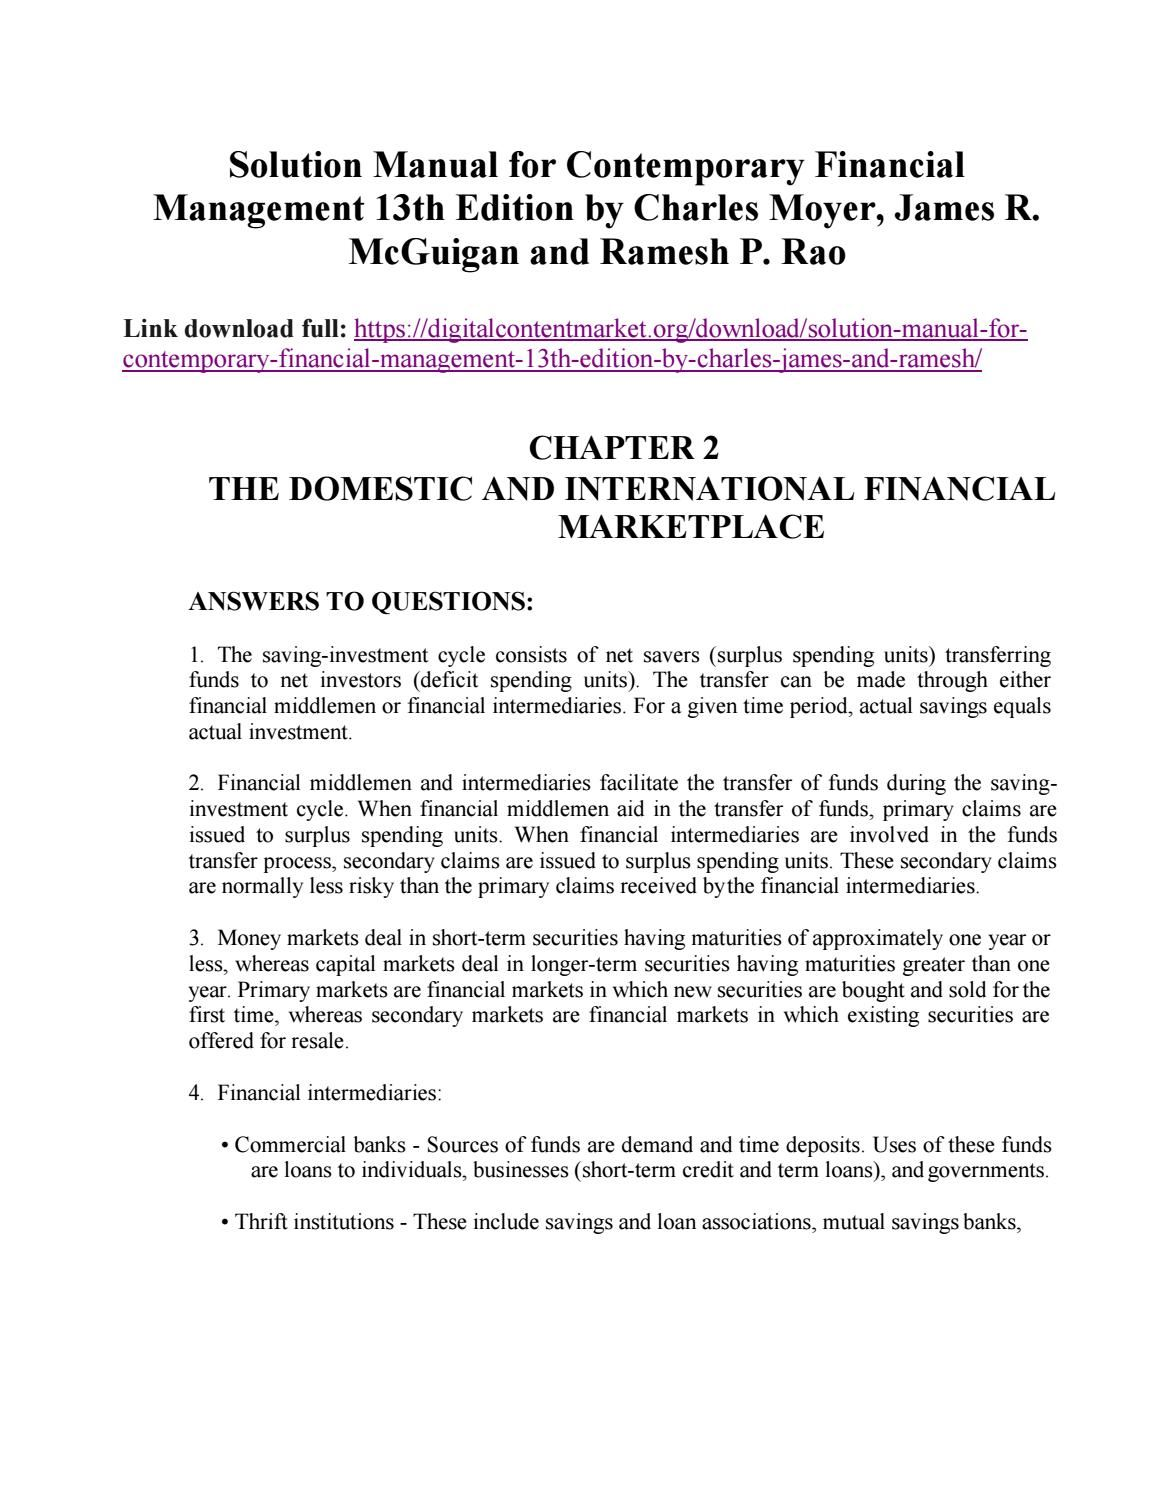 solution manual for contemporary financial management 13th edition rh pinterest com Calculus Student Solutions Manual PDF Calculus Student Solutions Manual PDF